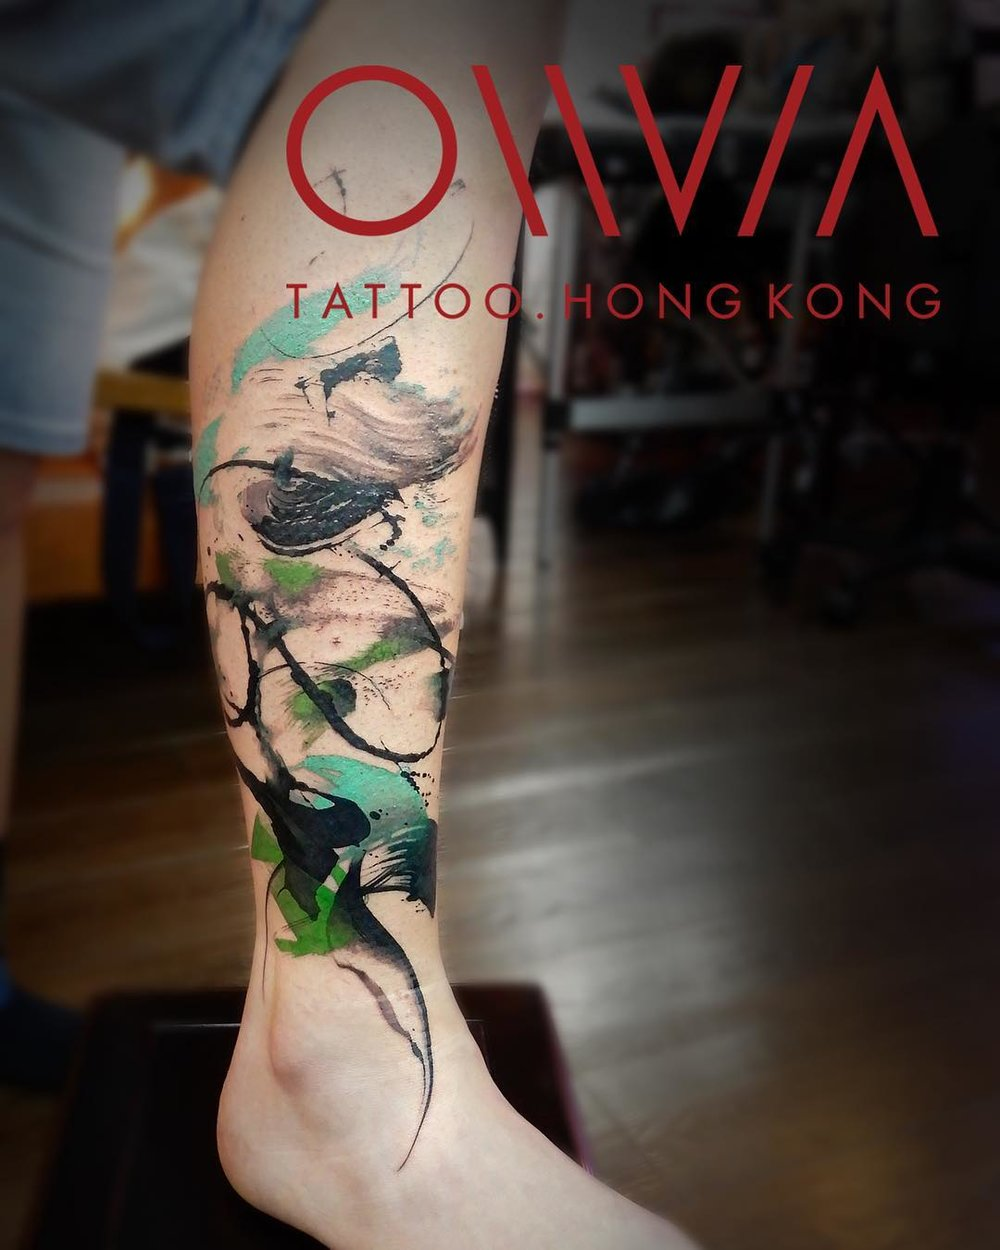 2018-fridays-tattoo-hong-kong-olivia-brush-abstract.jpg